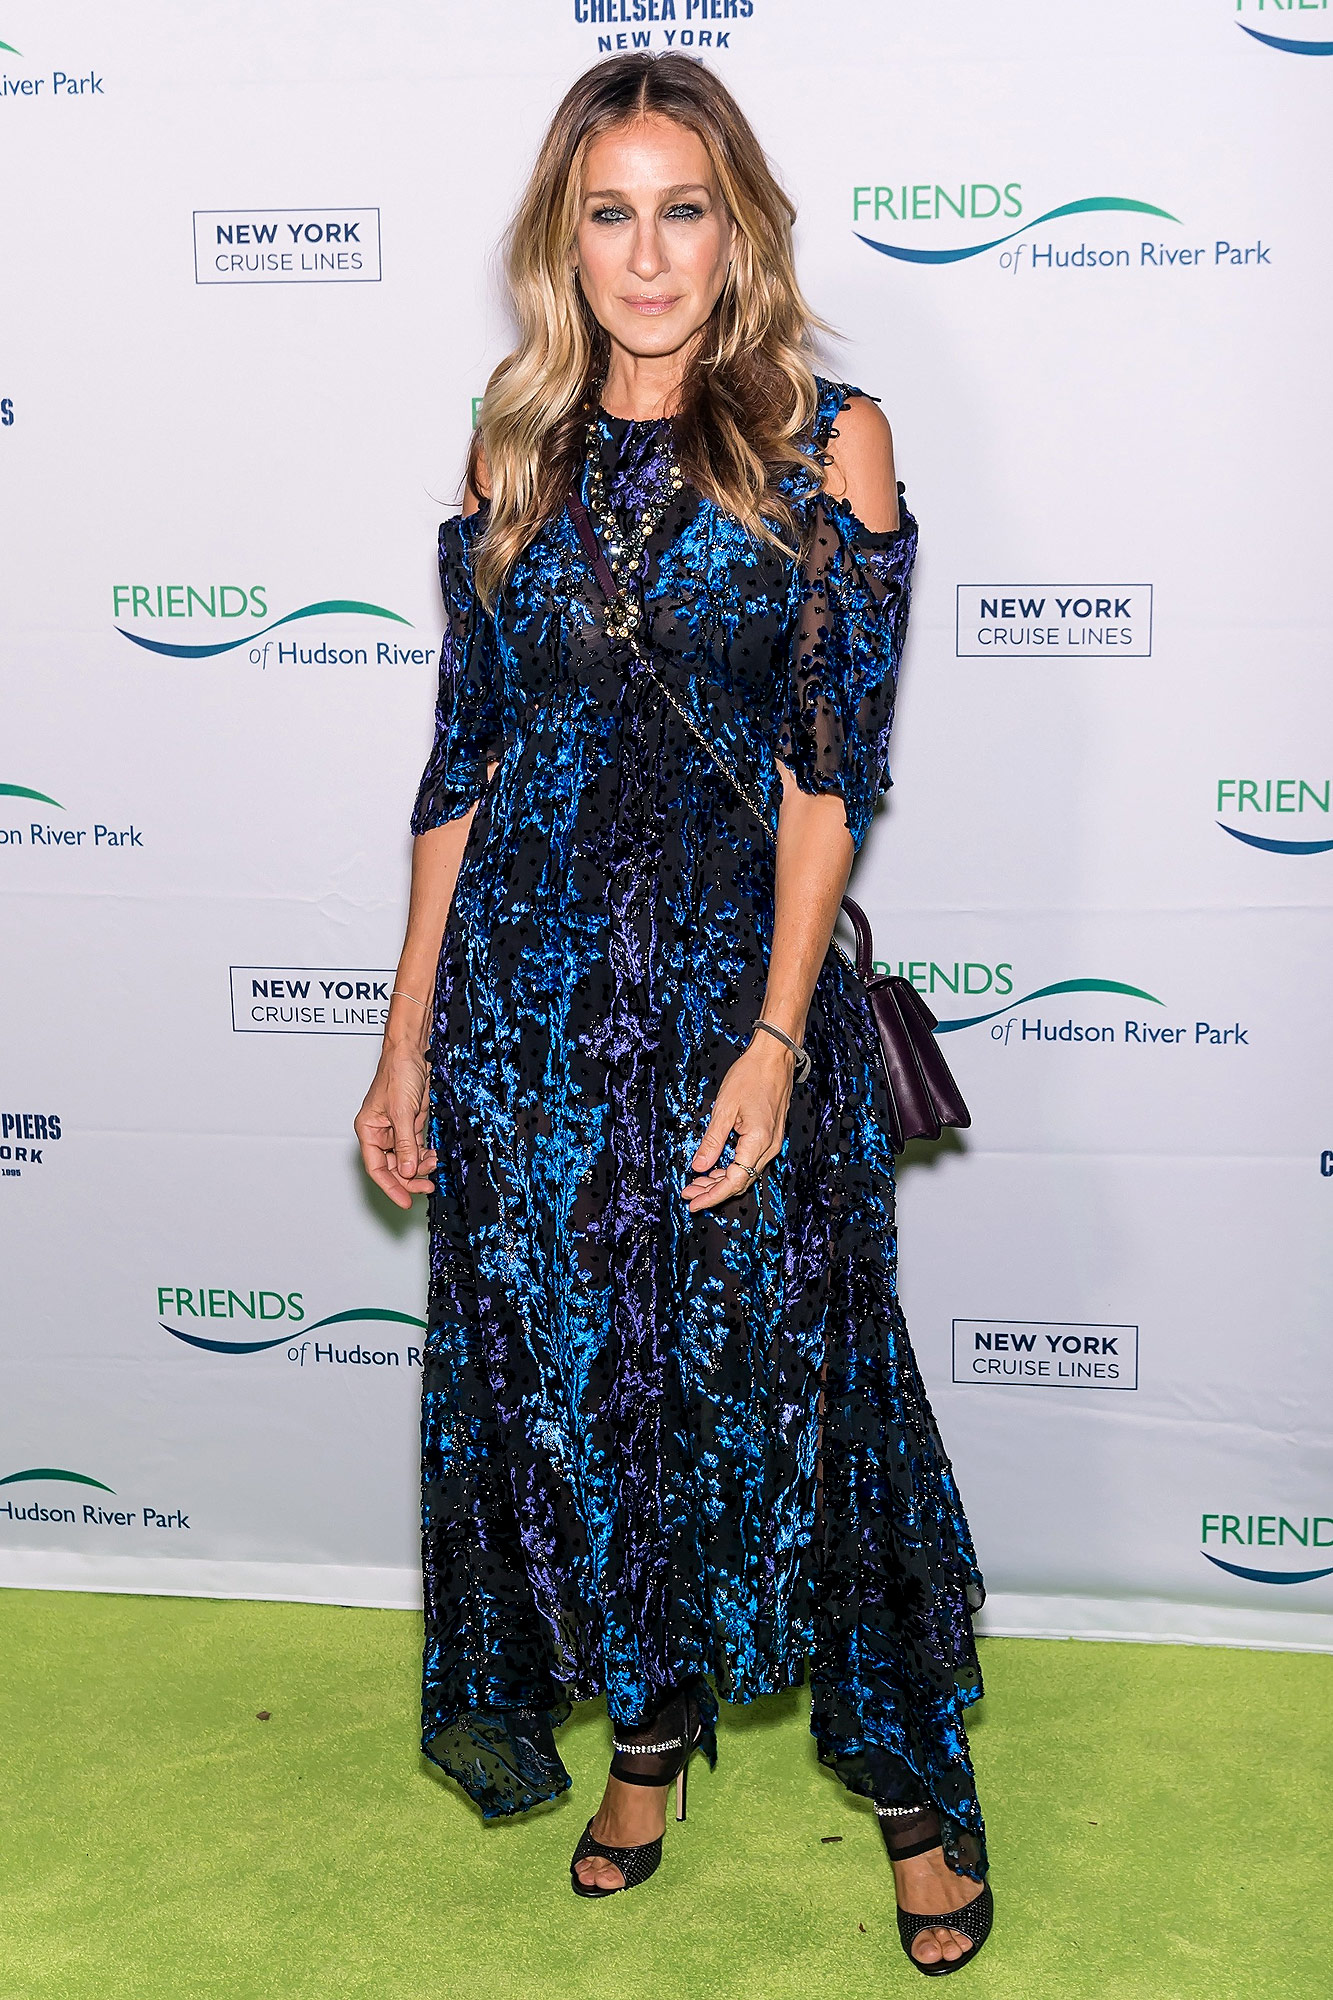 Sarah Jessica Parker attends the 2016 Friends Of Hudson River Park Gala at Hudson River Park's Pier 62 on October 13, 2016 in New York City.